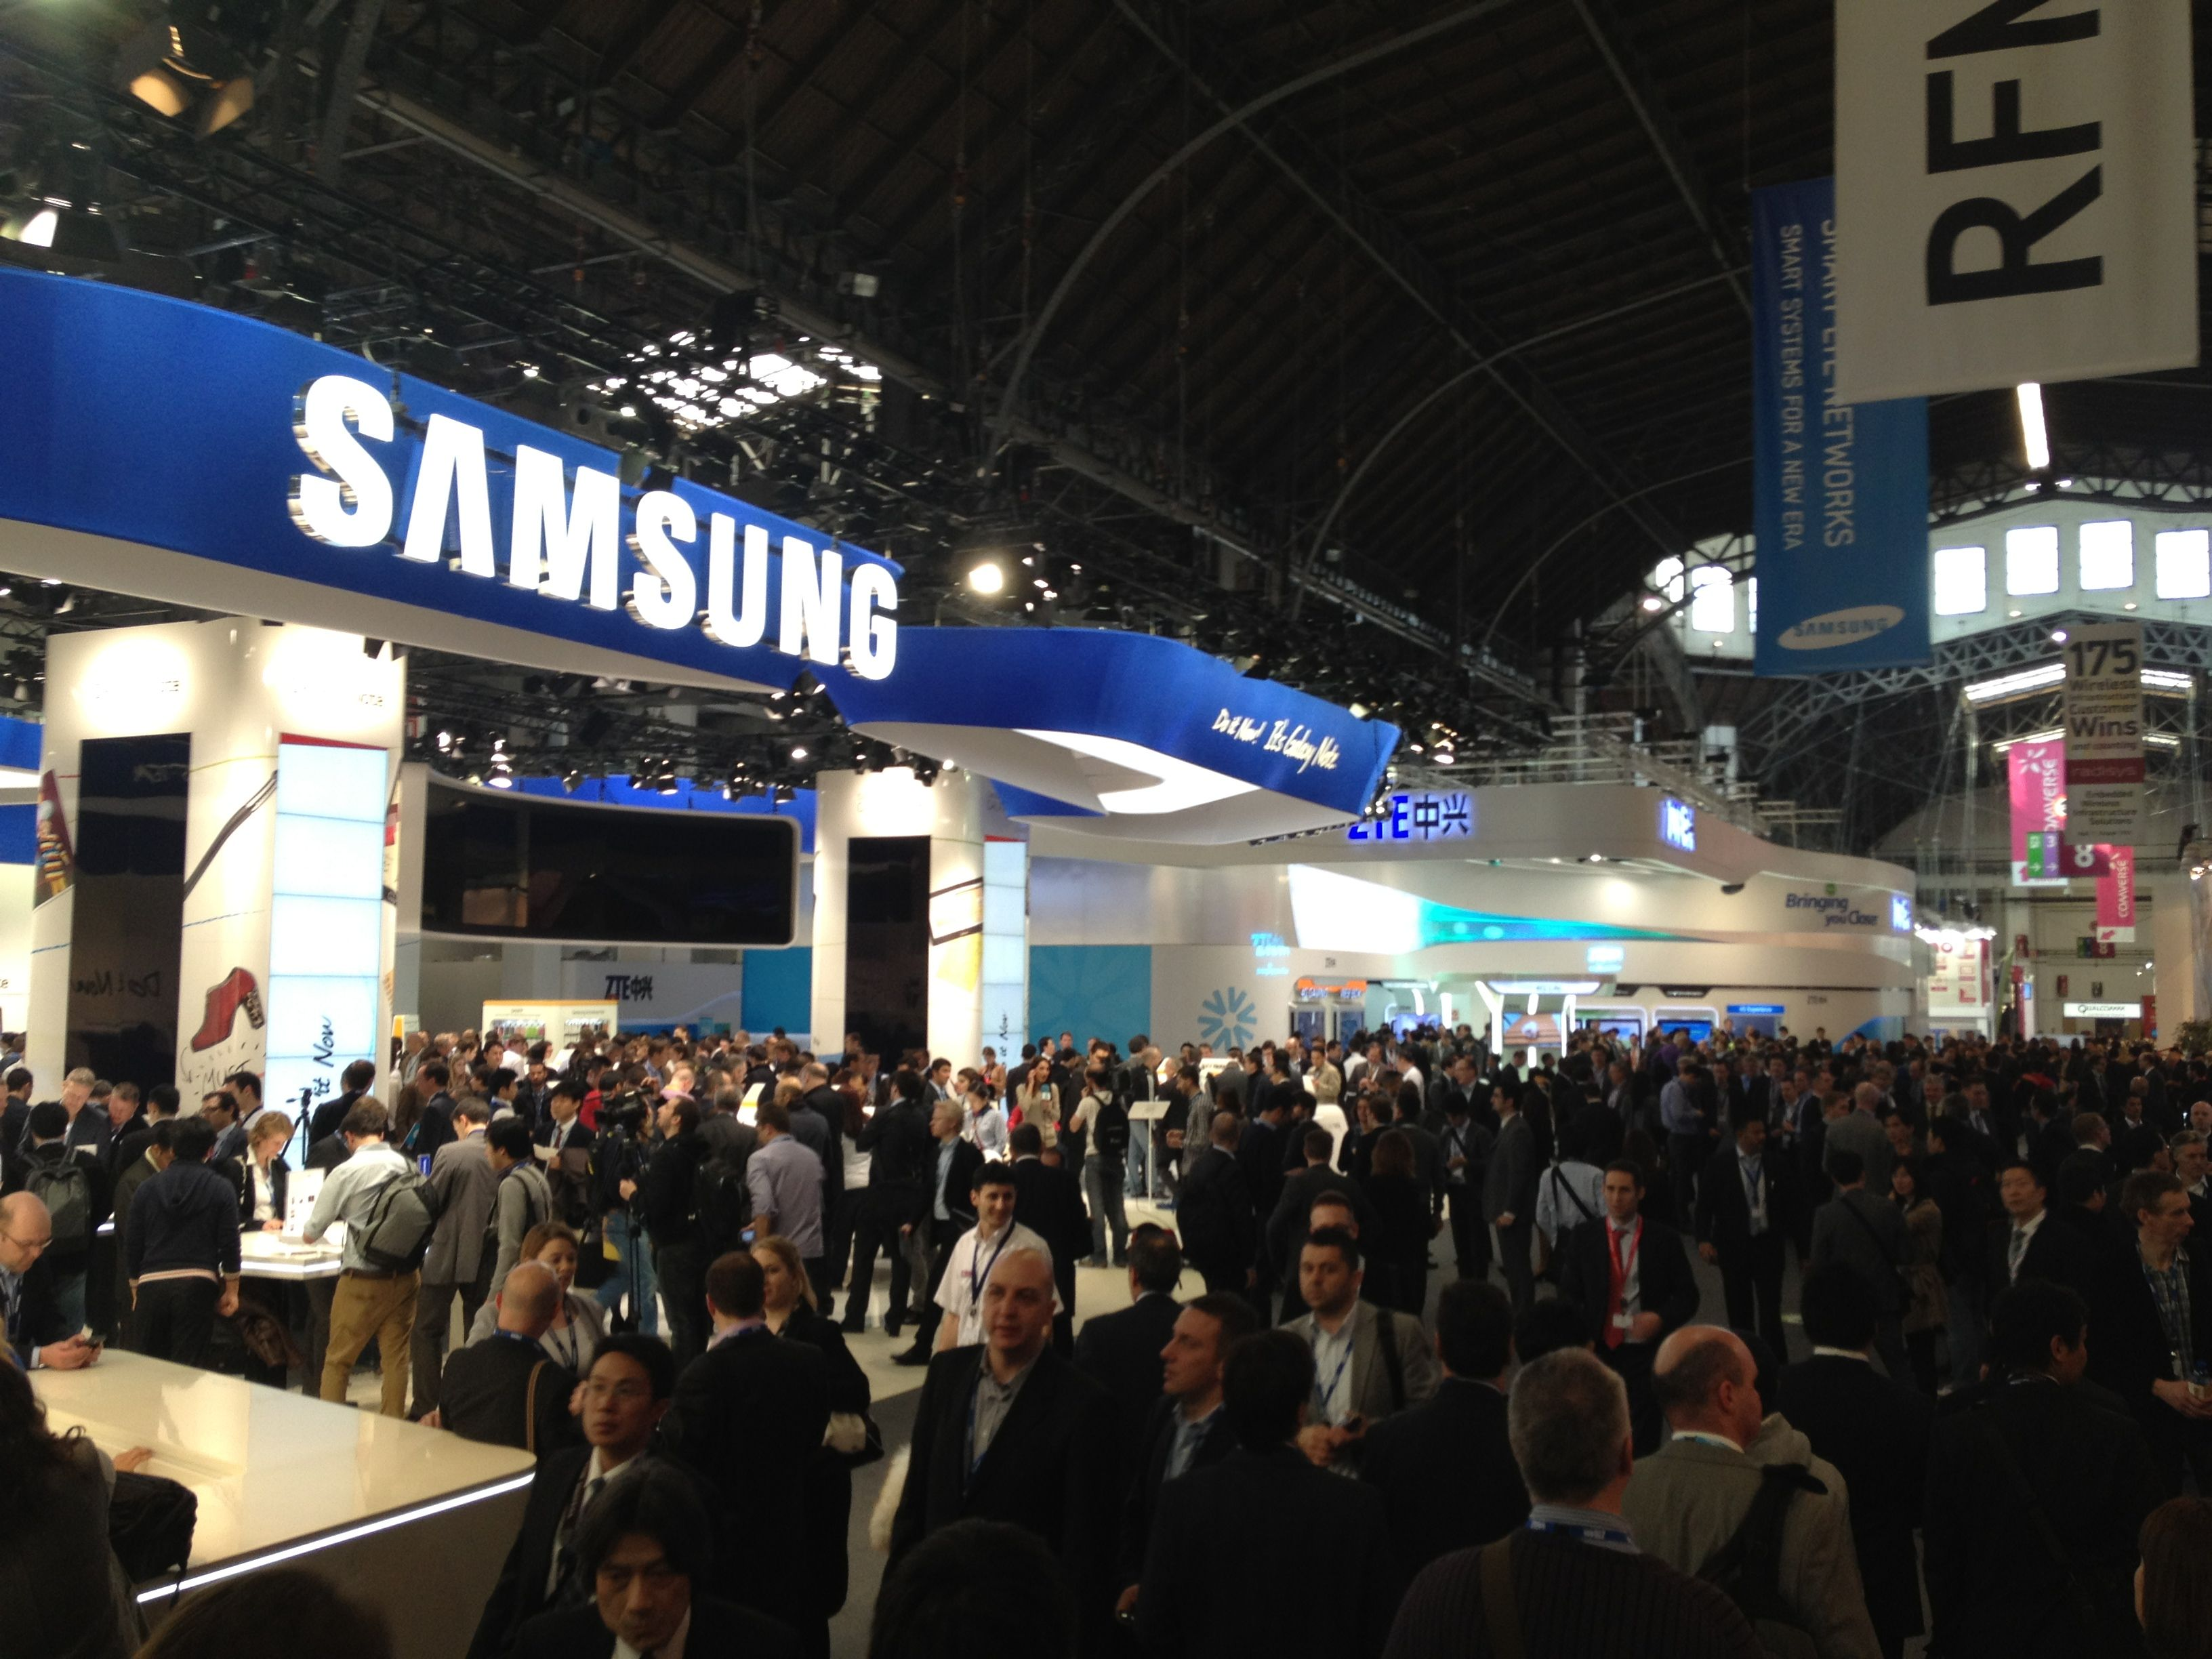 Day 1 at Mobile World Congress 2012